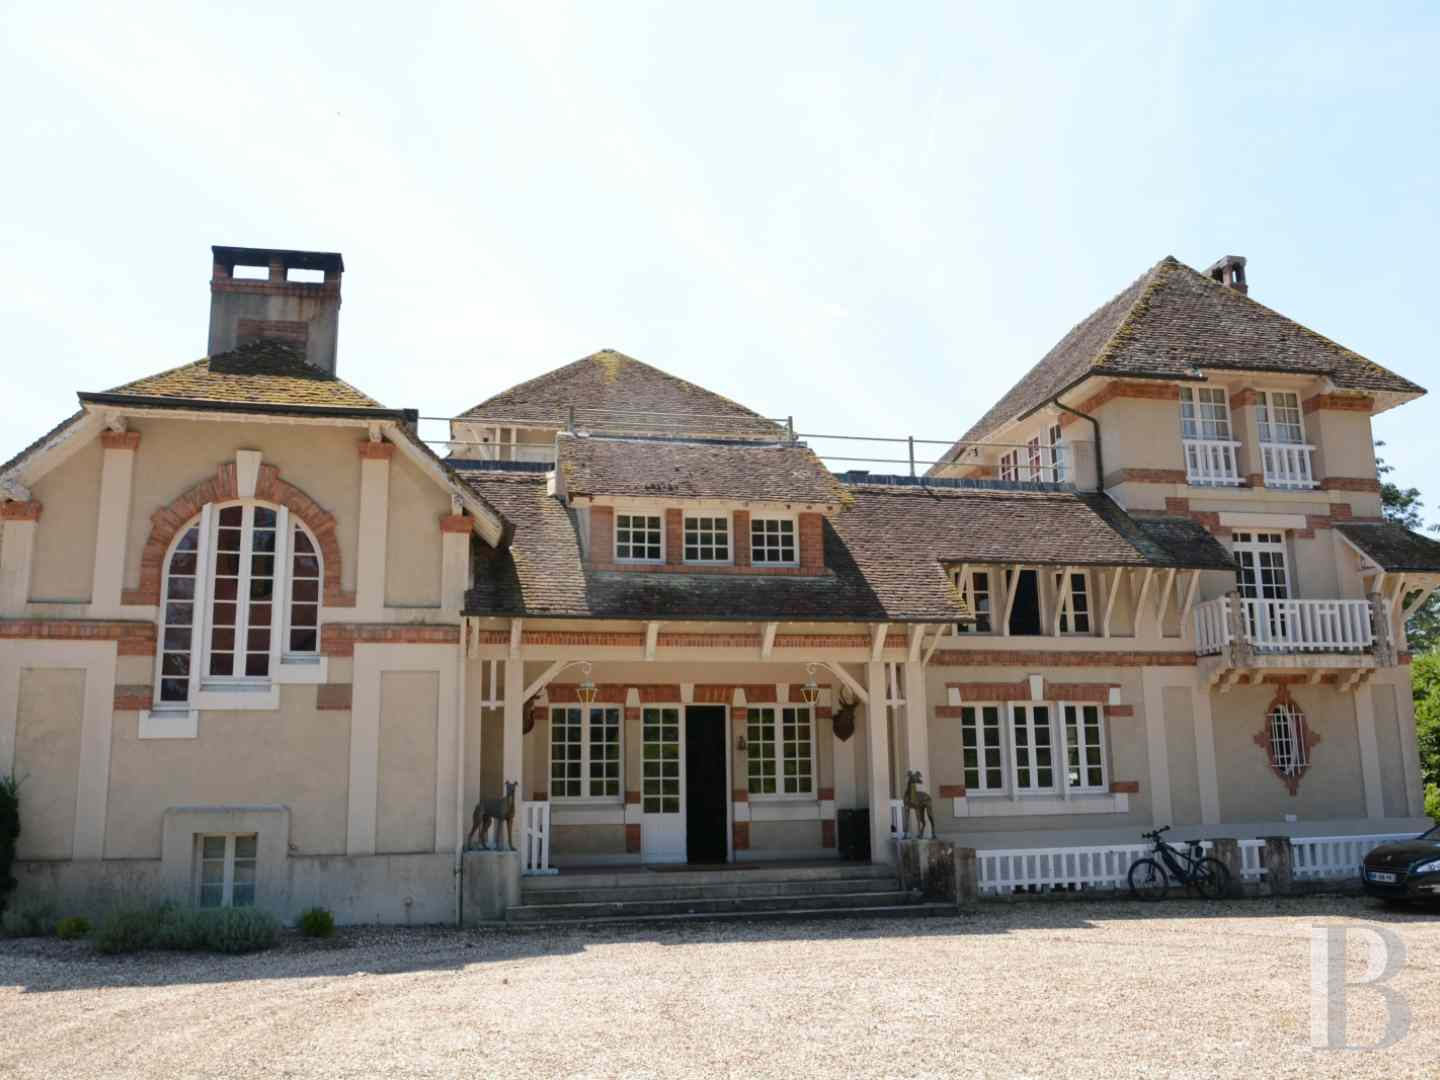 property for sale France center val de loire residences hunting - 2 zoom